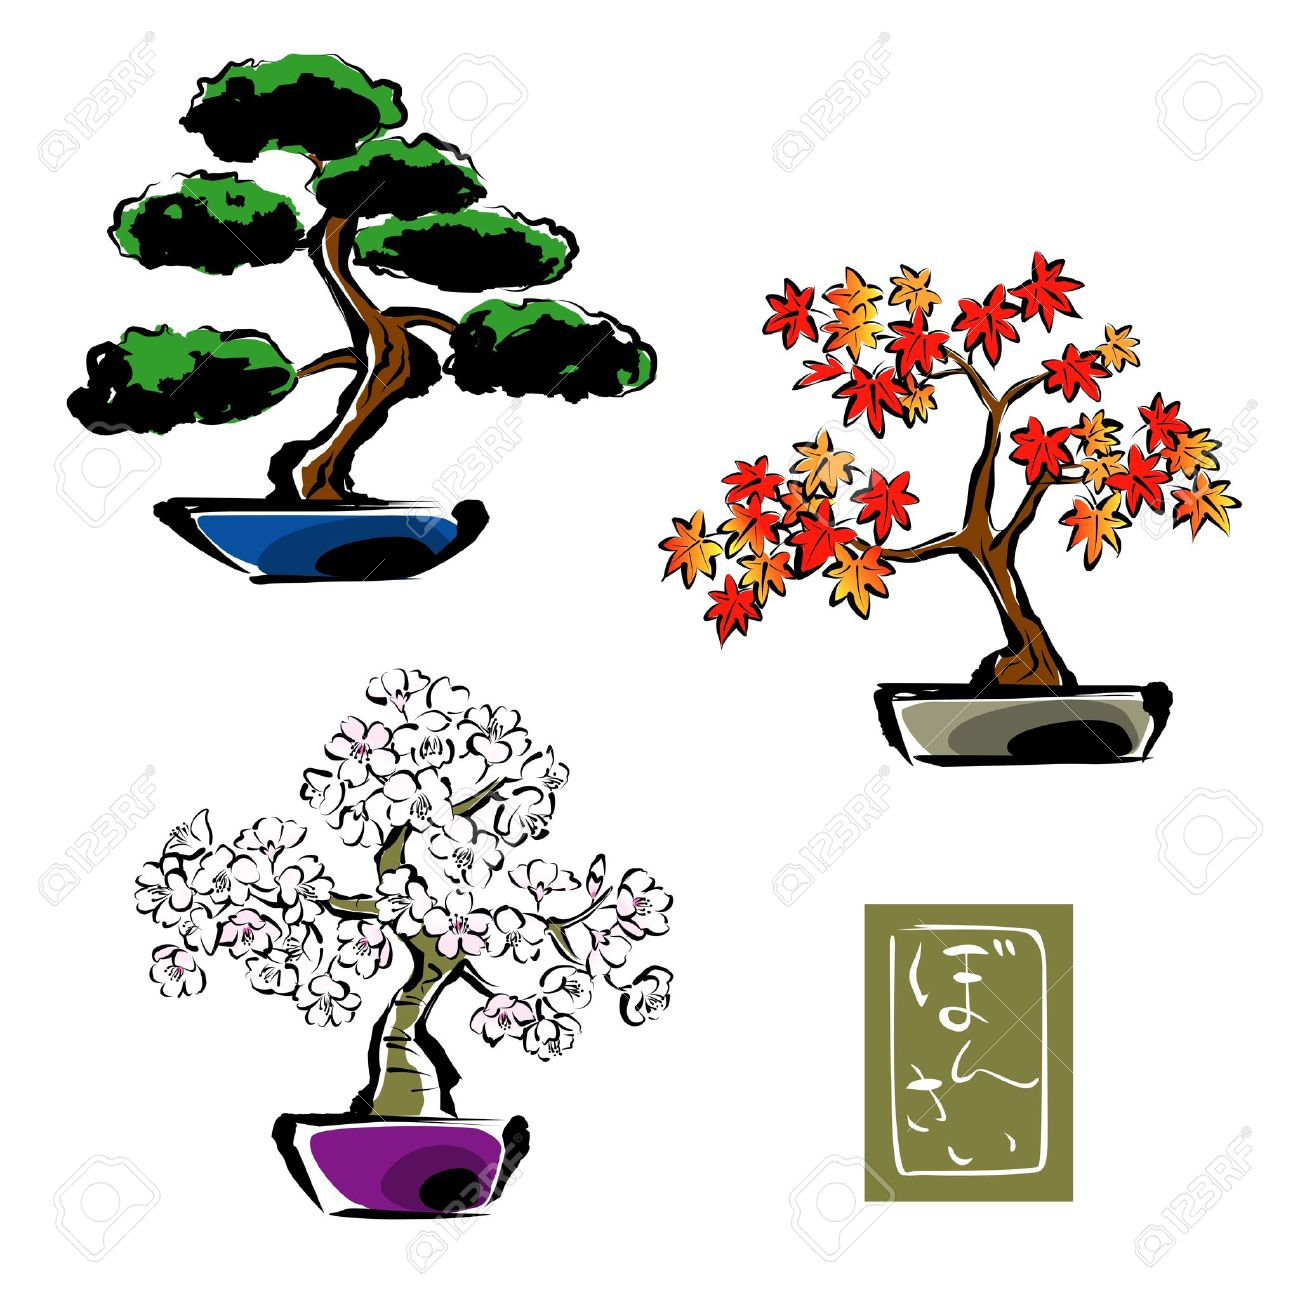 Ume Tree clipart #5, Download drawings